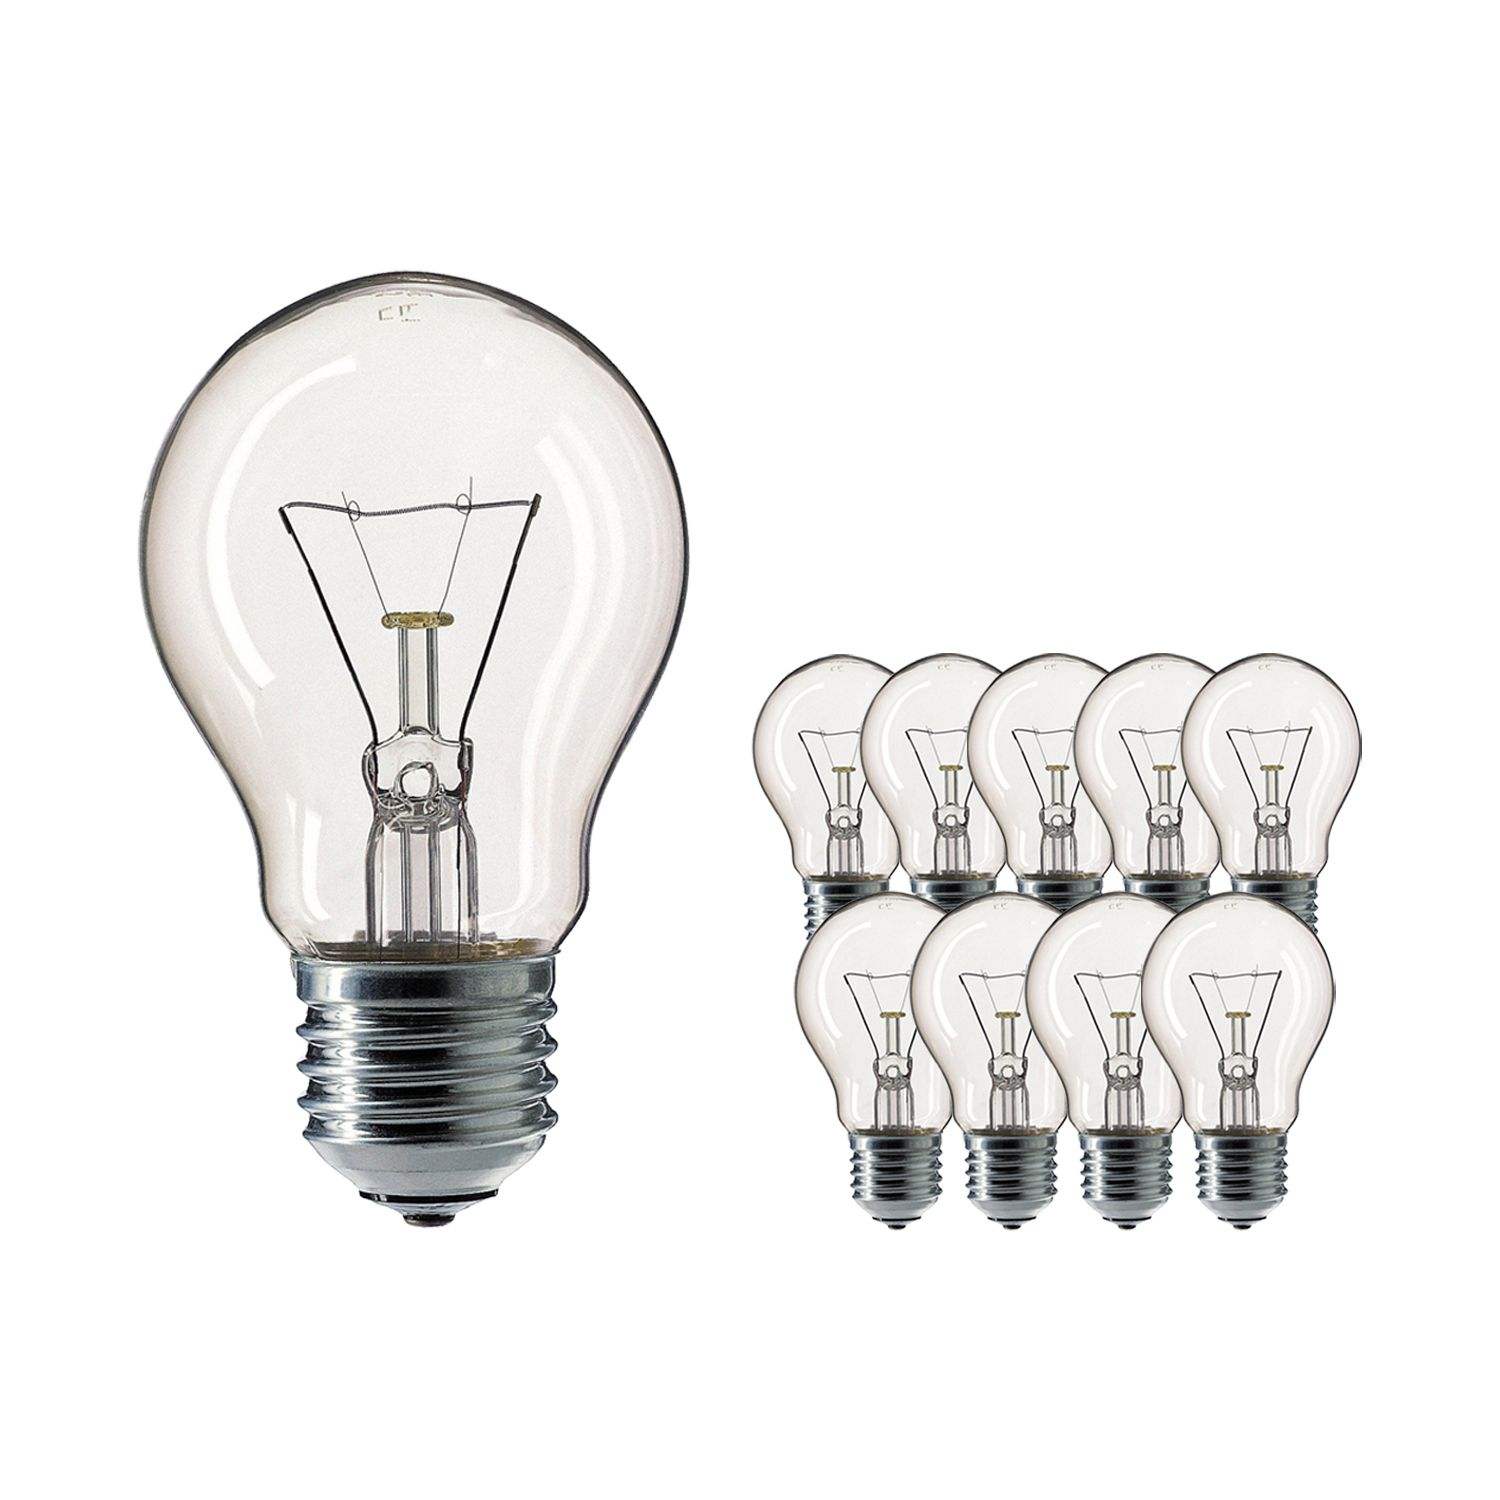 Multipack 10x Standard Incandescent Bulb Clear E27 40W 230V